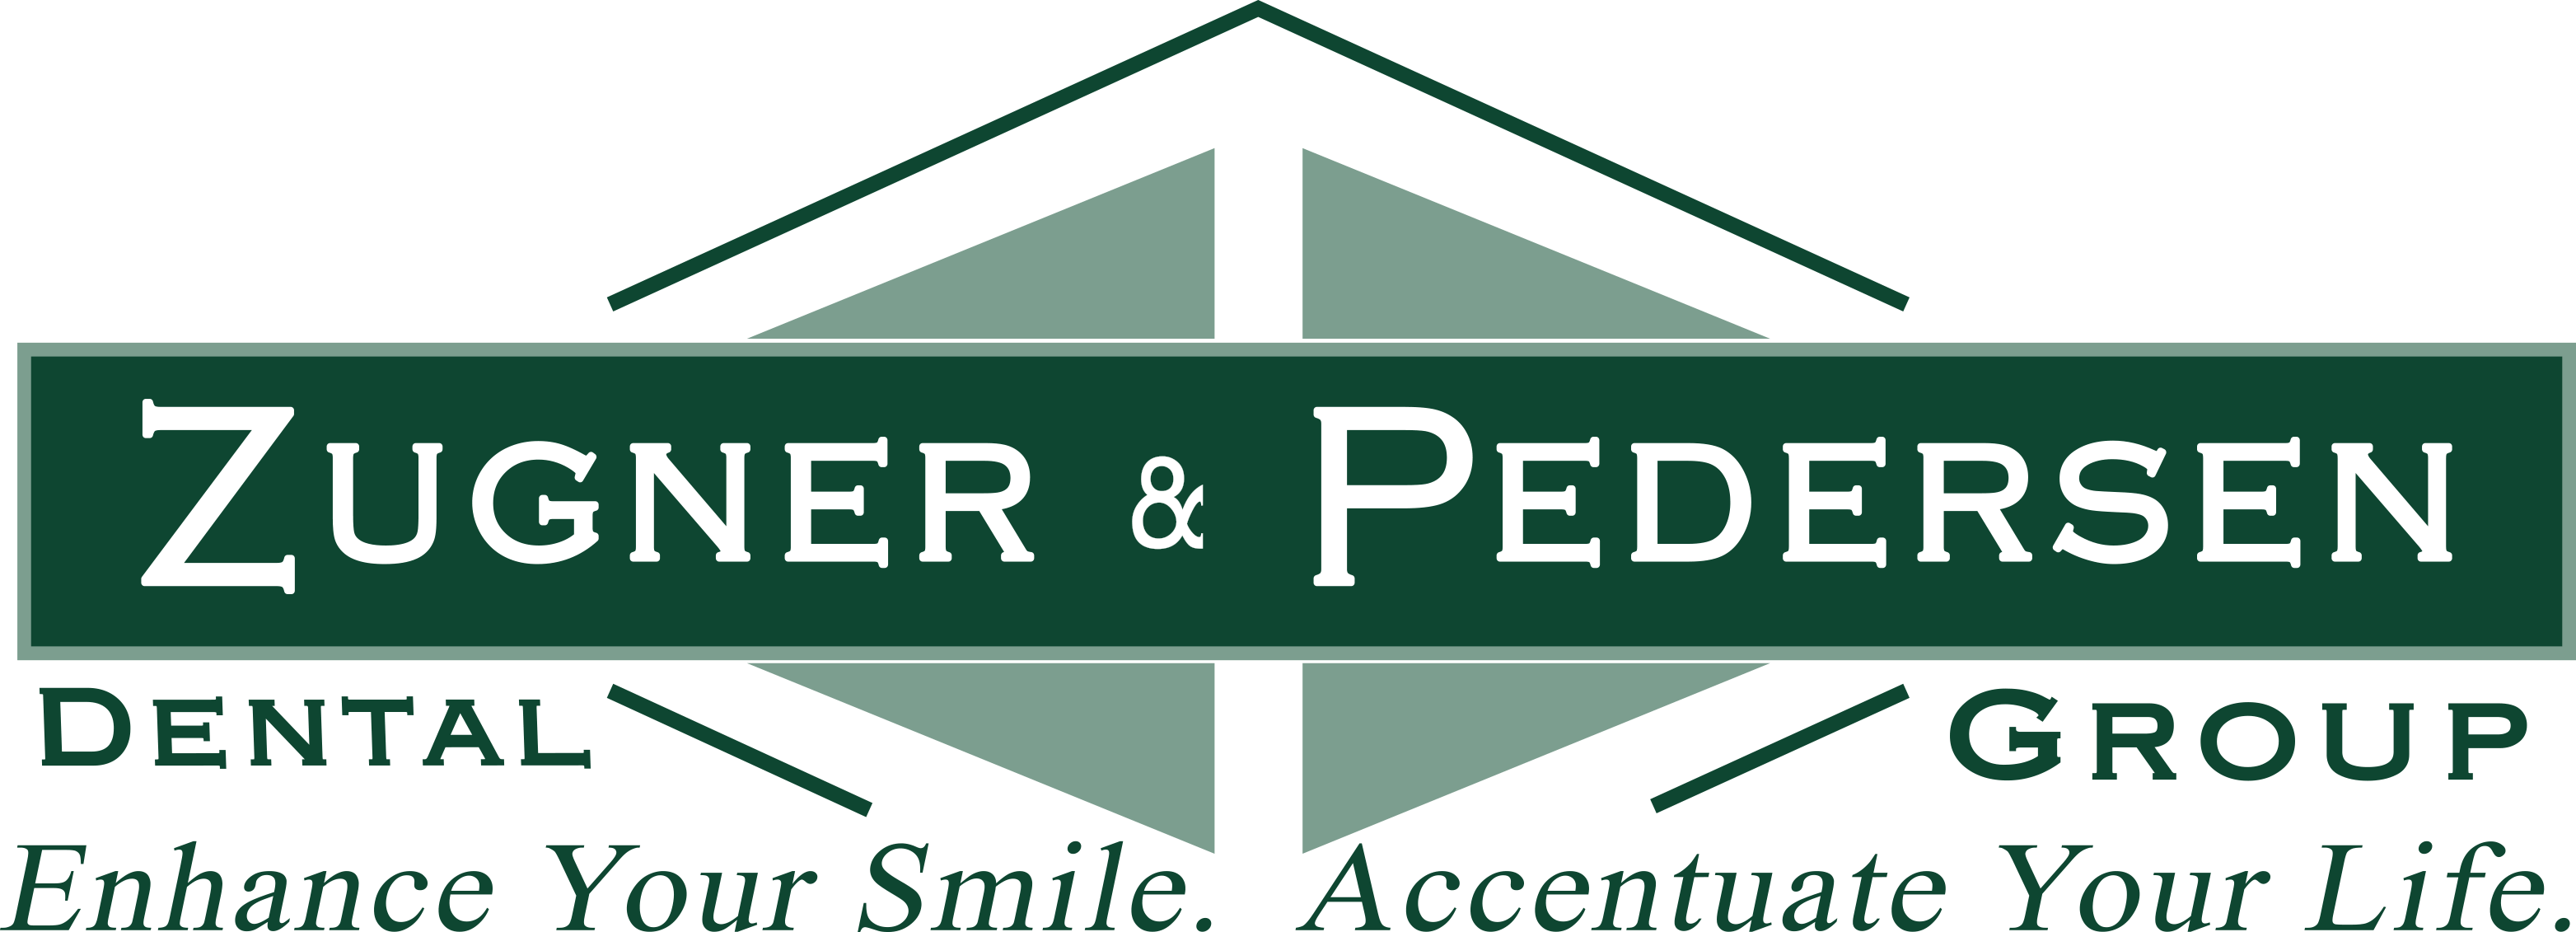 Zugner & Pedersen Dental Group Logo